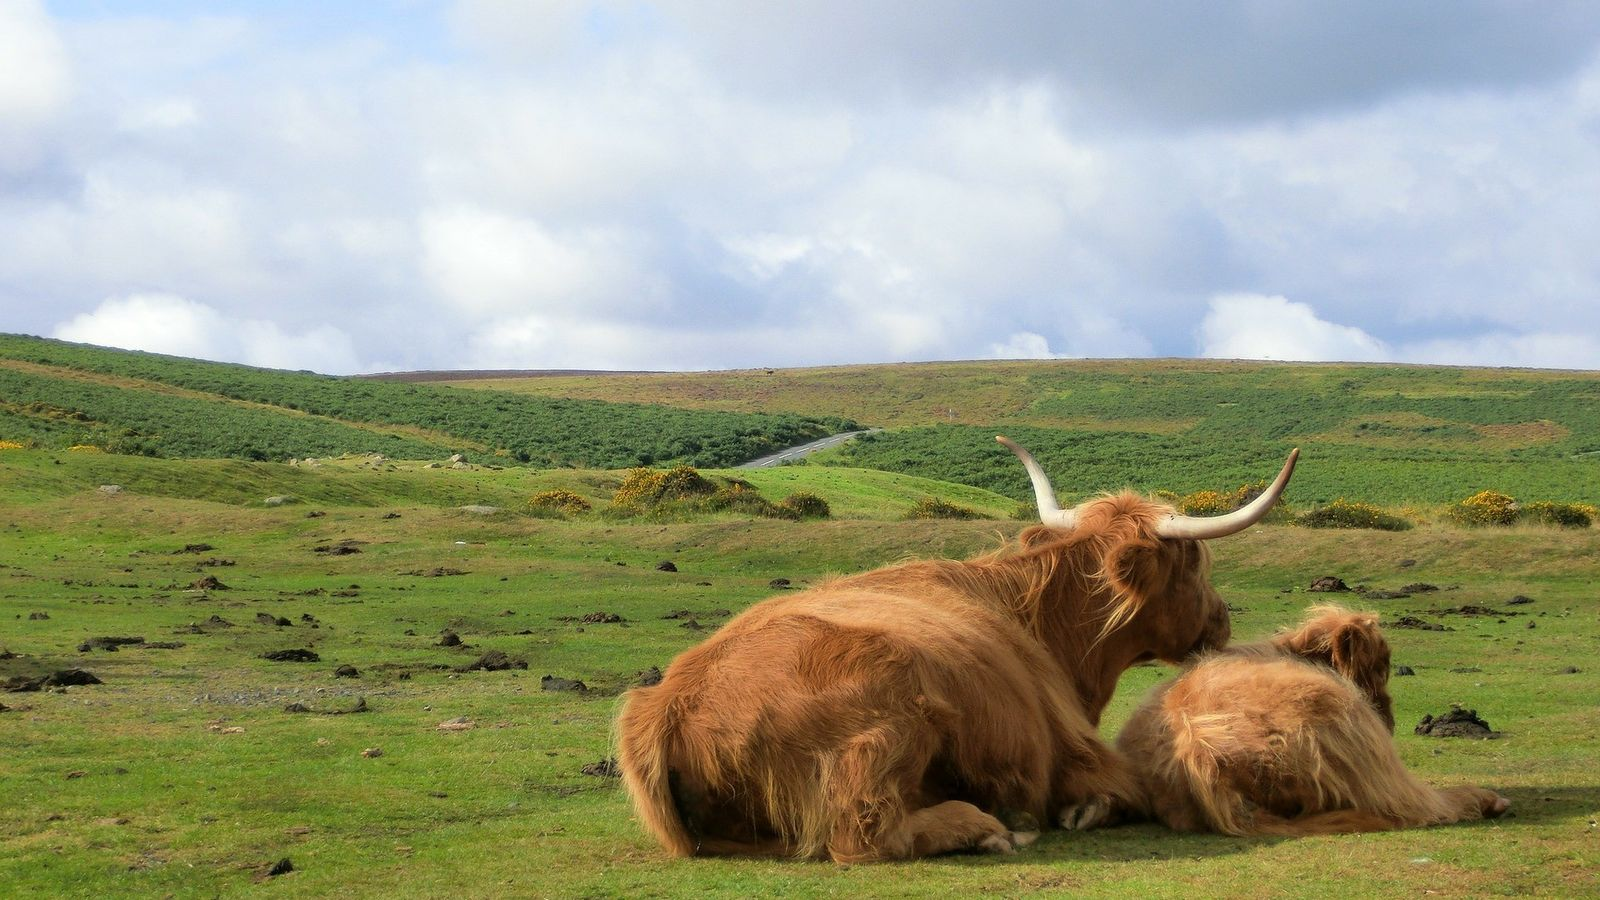 You would expect to find Highland cattle in Scotland, so it's a surprise to find them ...